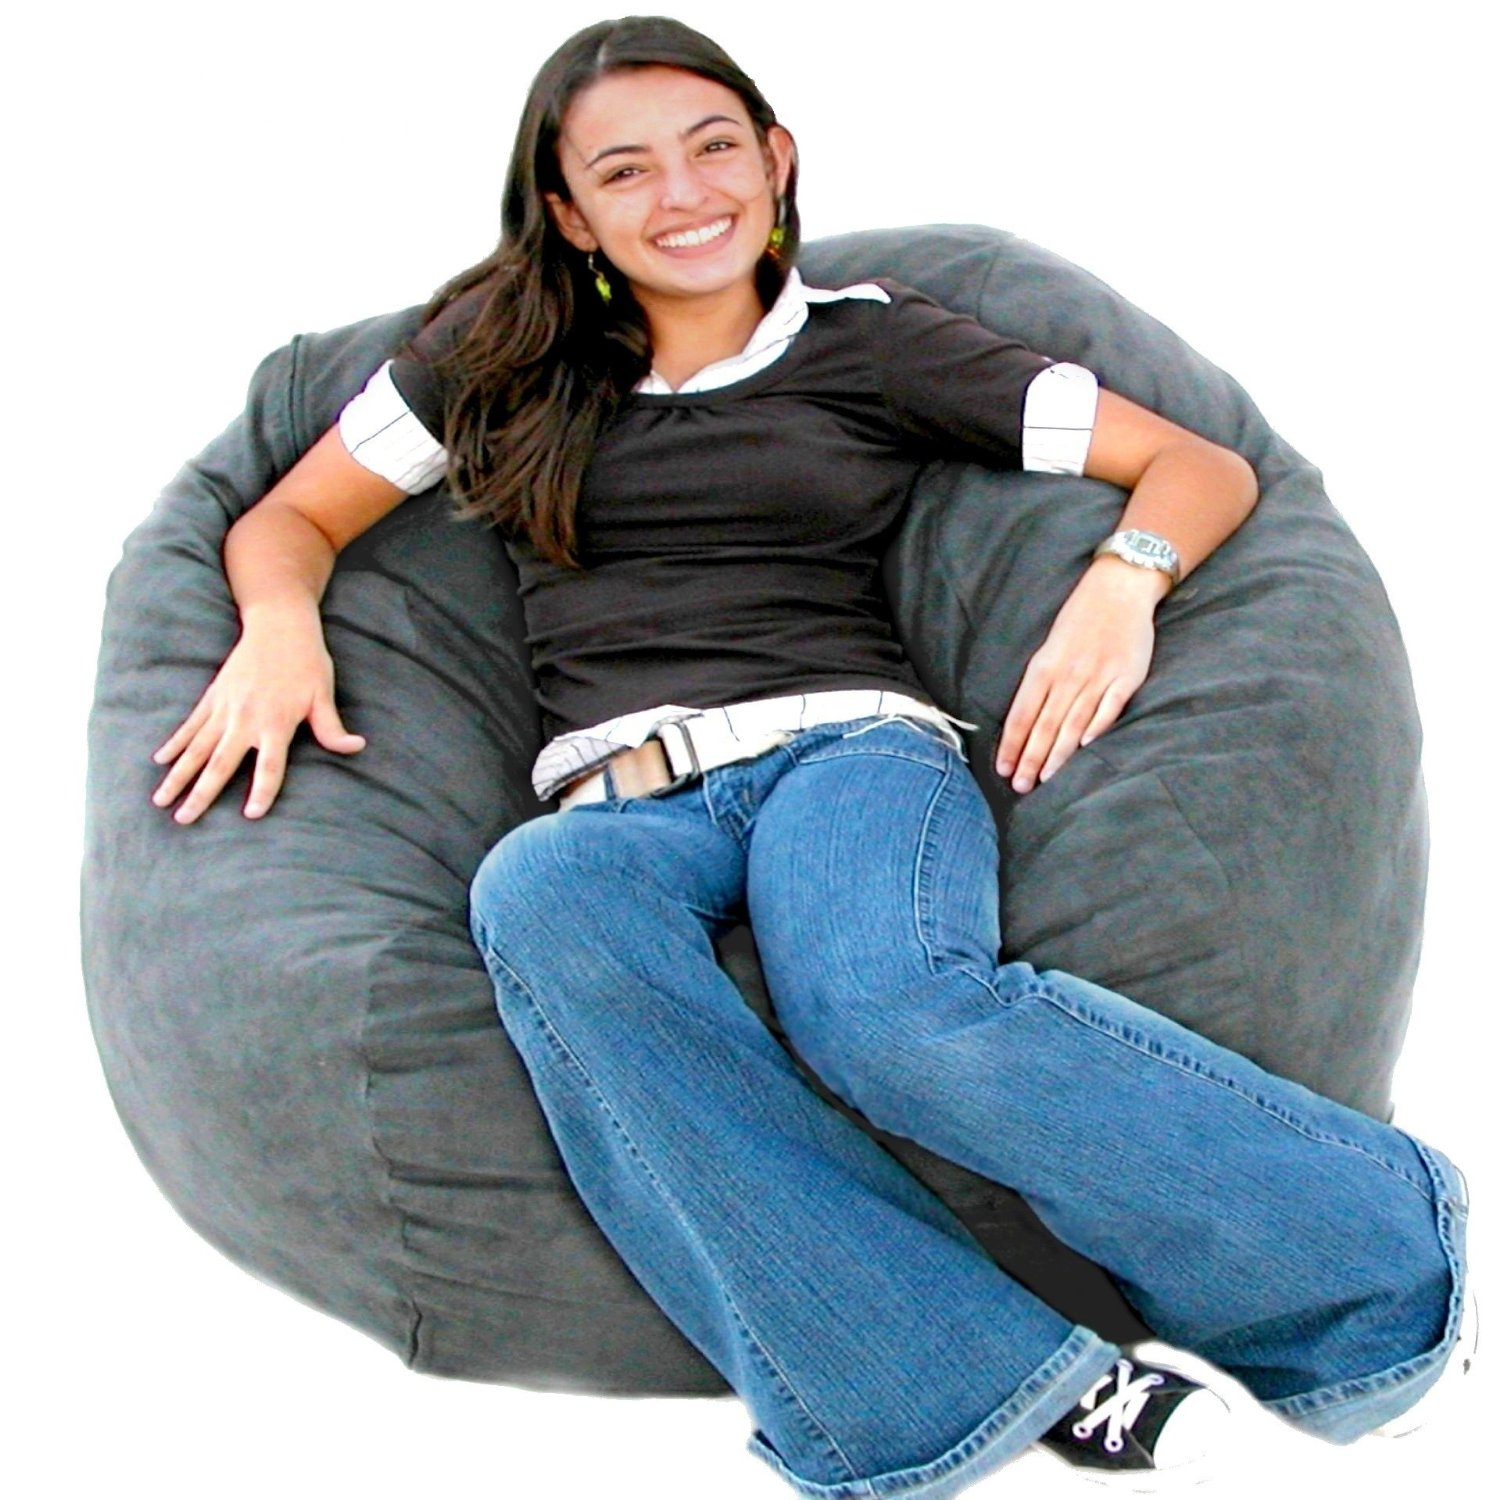 Bean Bags for as appropriate wedding anniversary for my wife